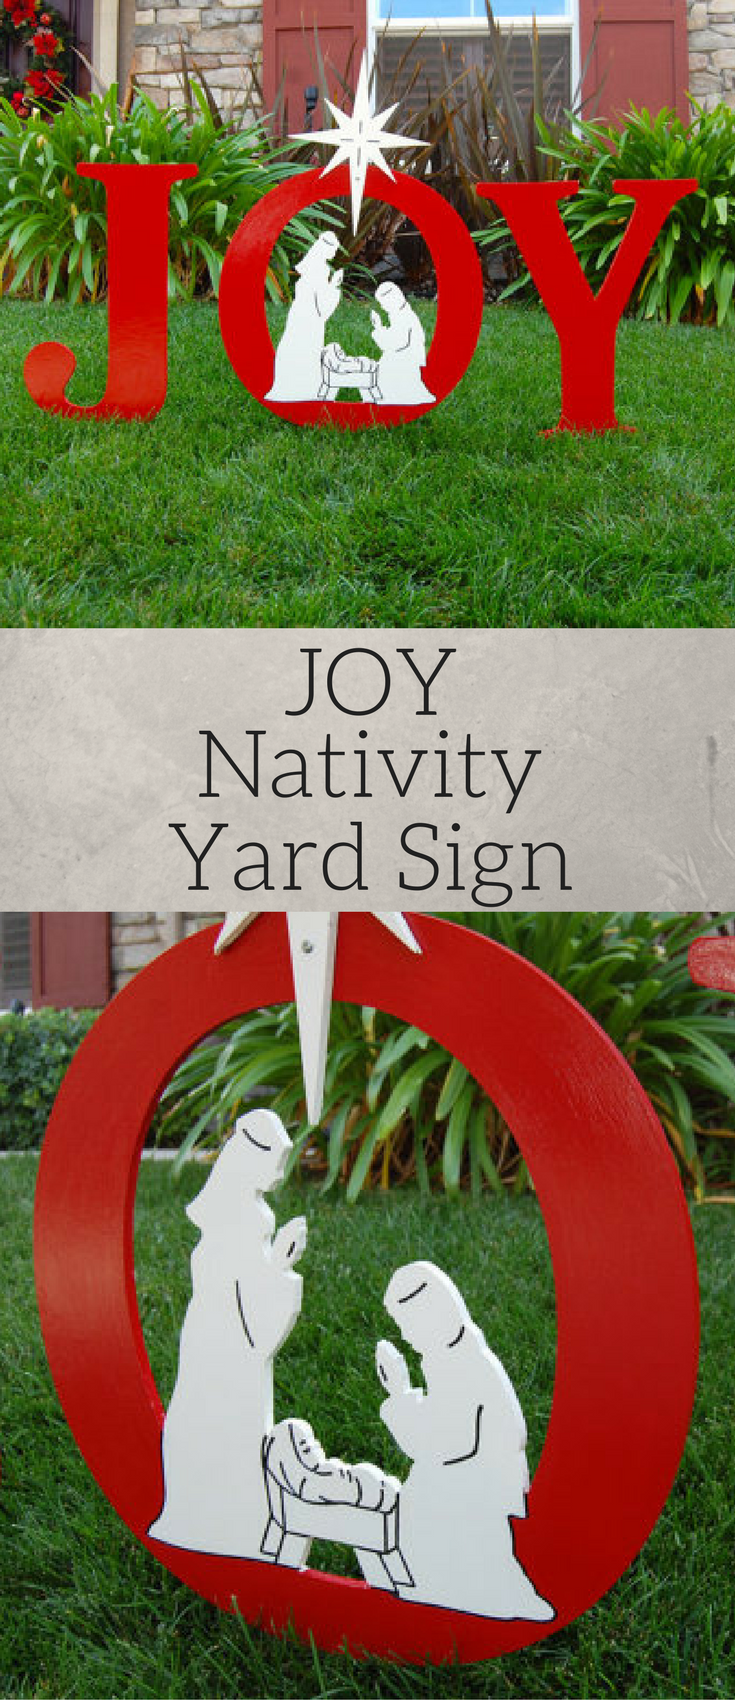 Joy nativity outdoor christmas sign holiday yard art sign outside